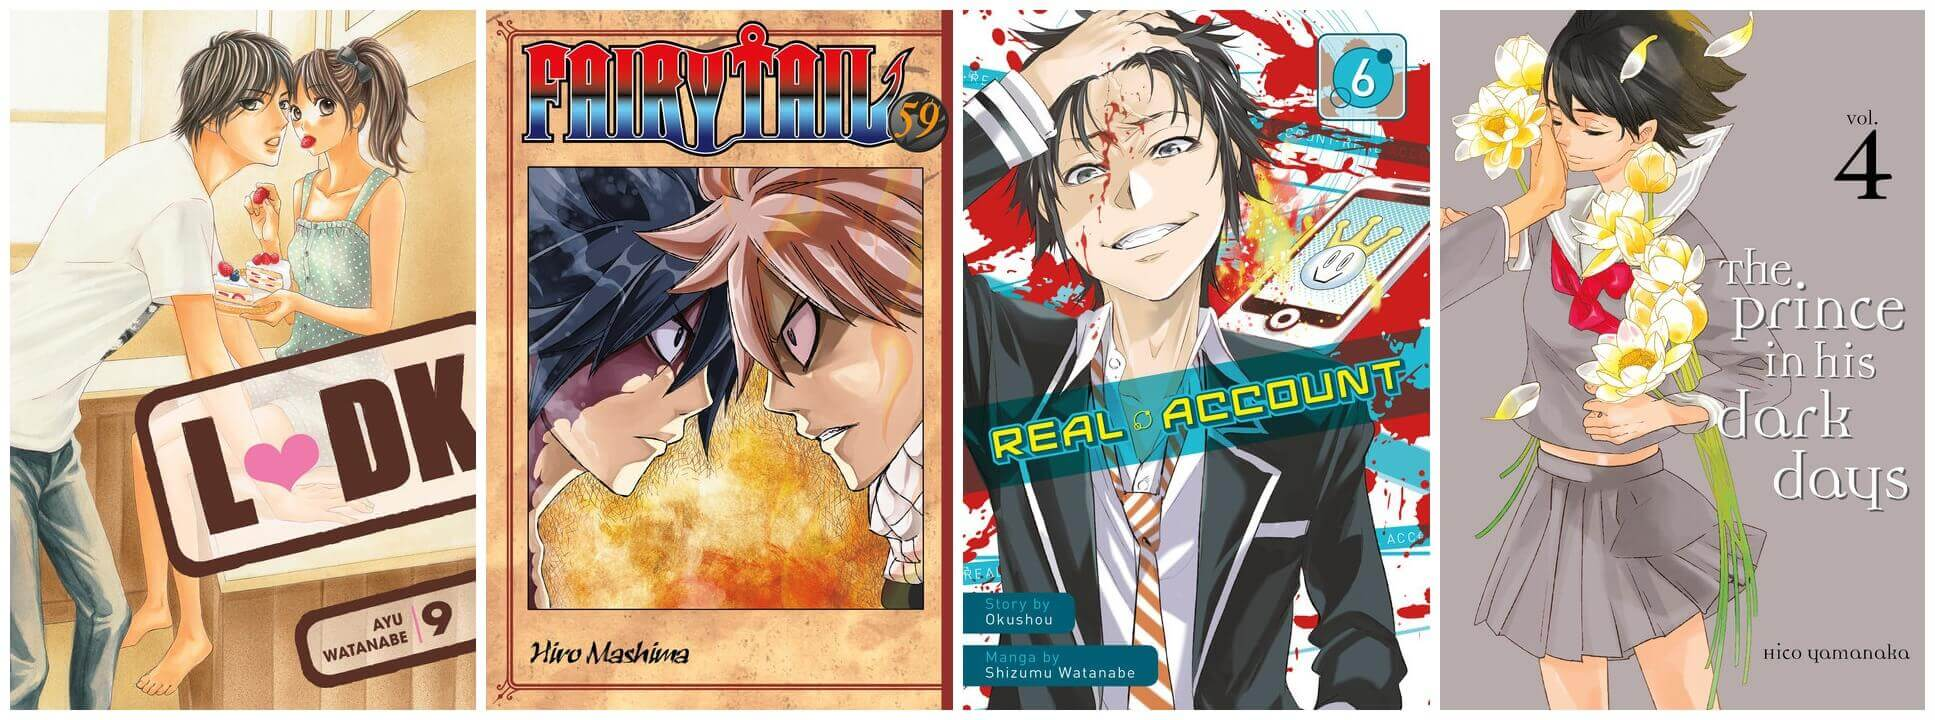 March 2017 Manga Releases